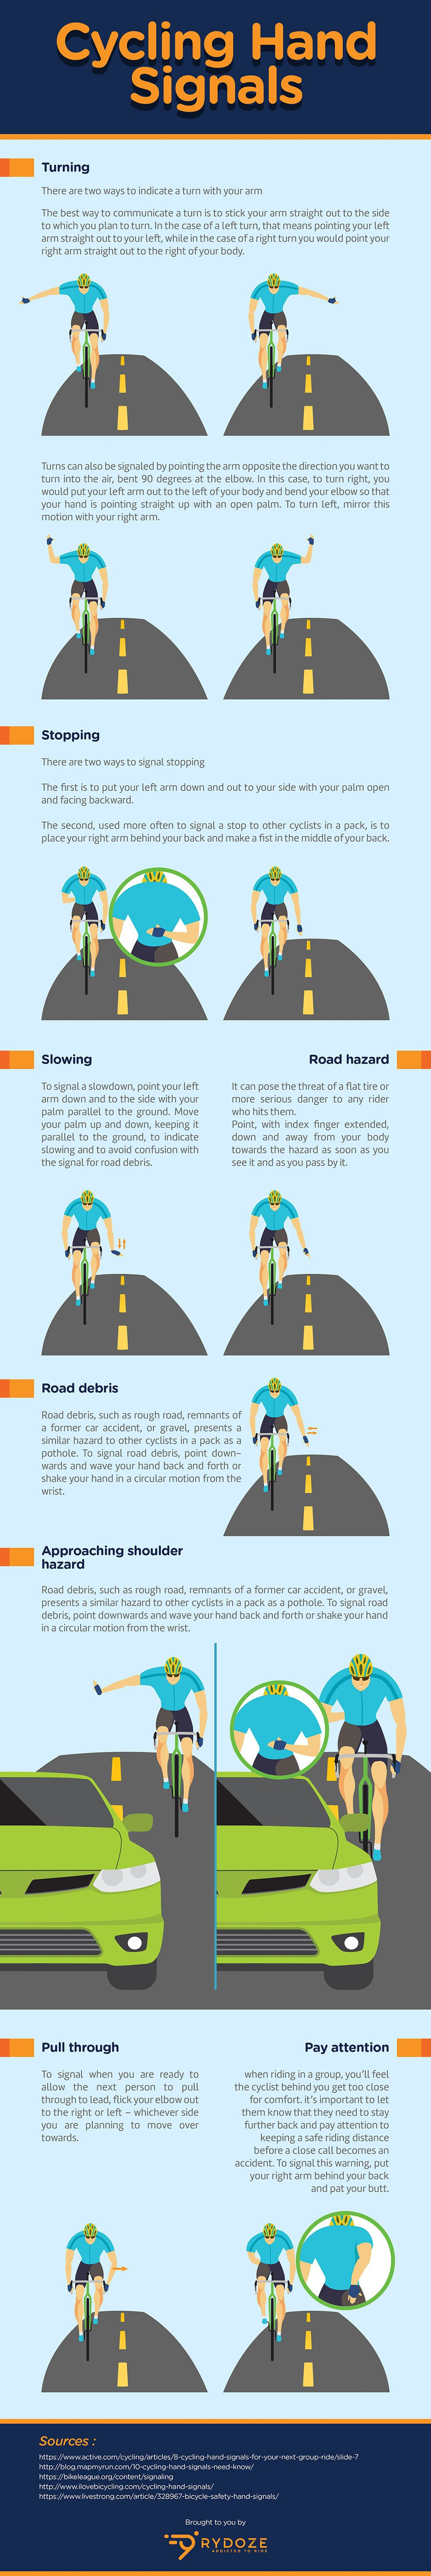 Cycling Hand Signals